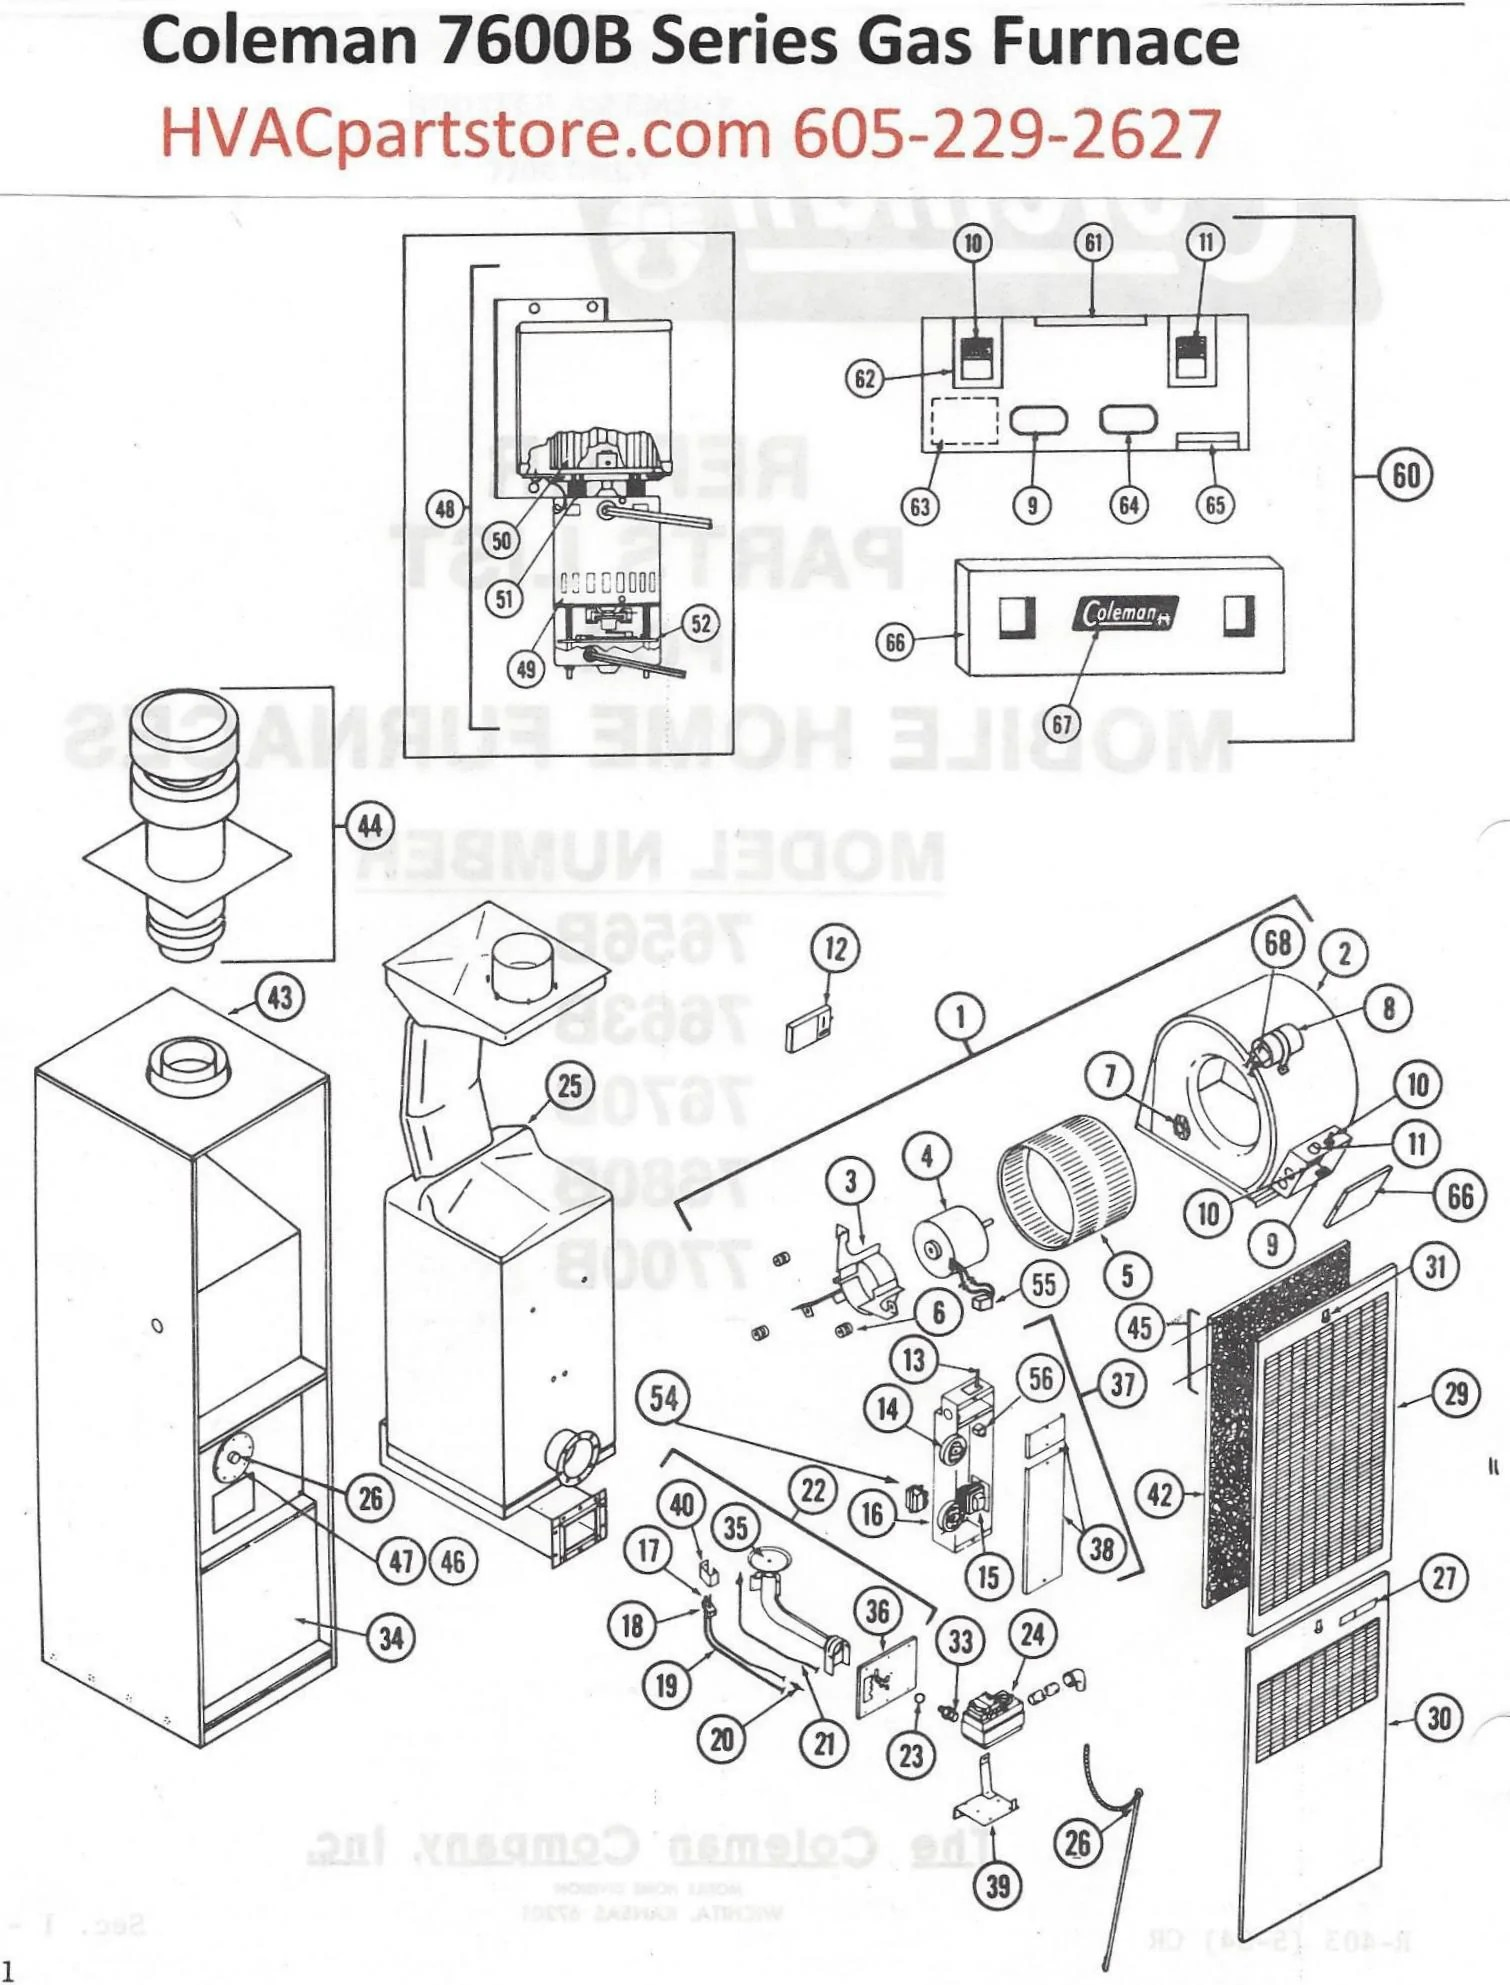 7670B856 Coleman Gas Furnace Parts – Tagged